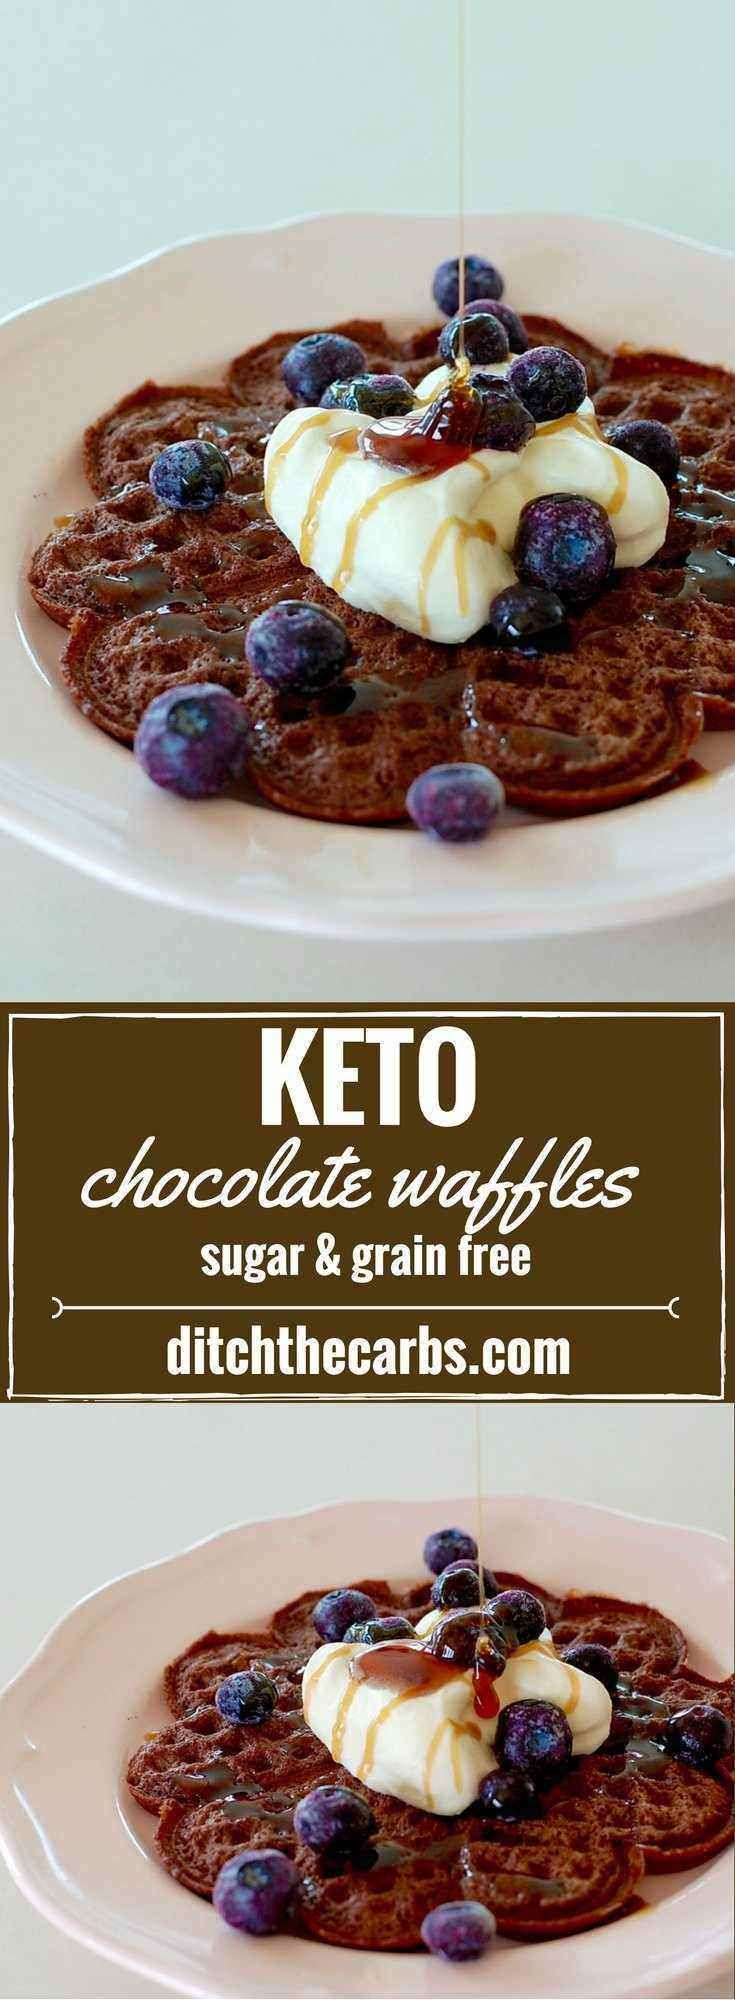 THE best keto chocolate waffles recipe out on the internet!!! Only 3.4g net carbs. It's so easy to prepare and they can be frozen too! Brilliant. | ditchthecarbs.com via @ditchthecarbs